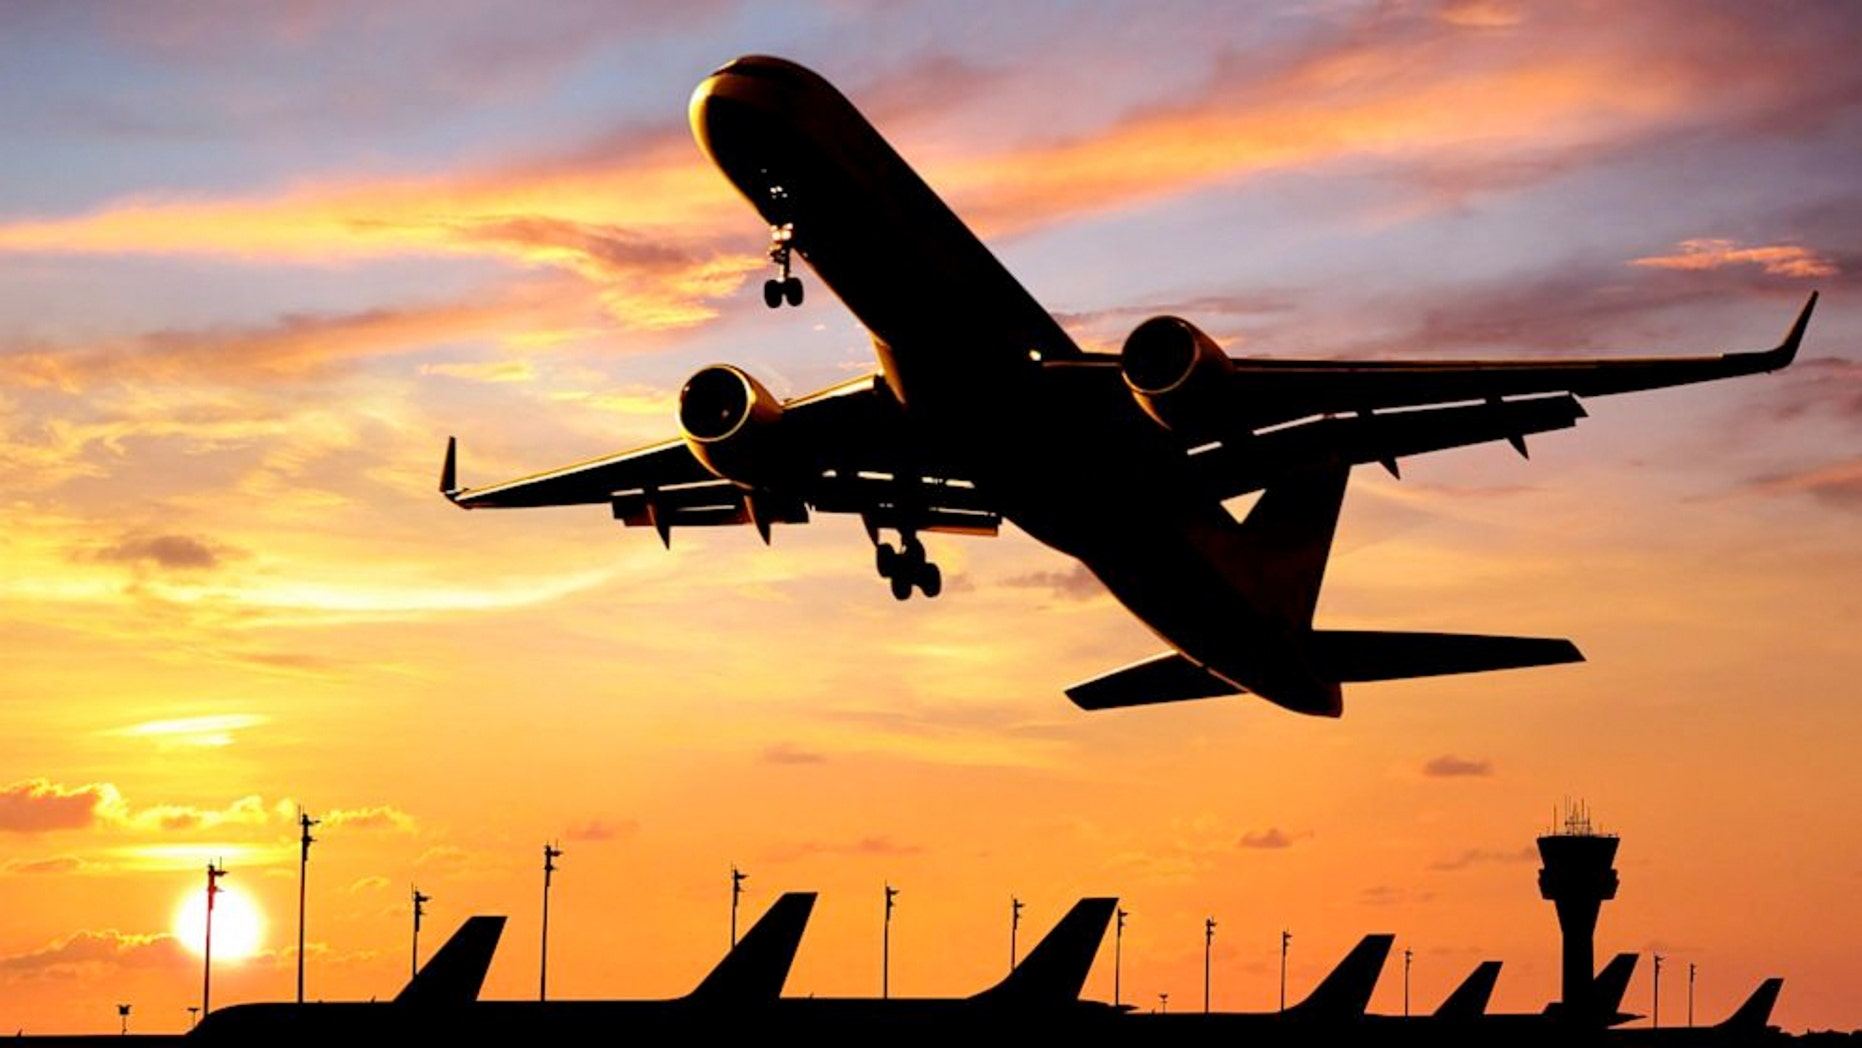 Flying during a travel dead zone could save you big money.